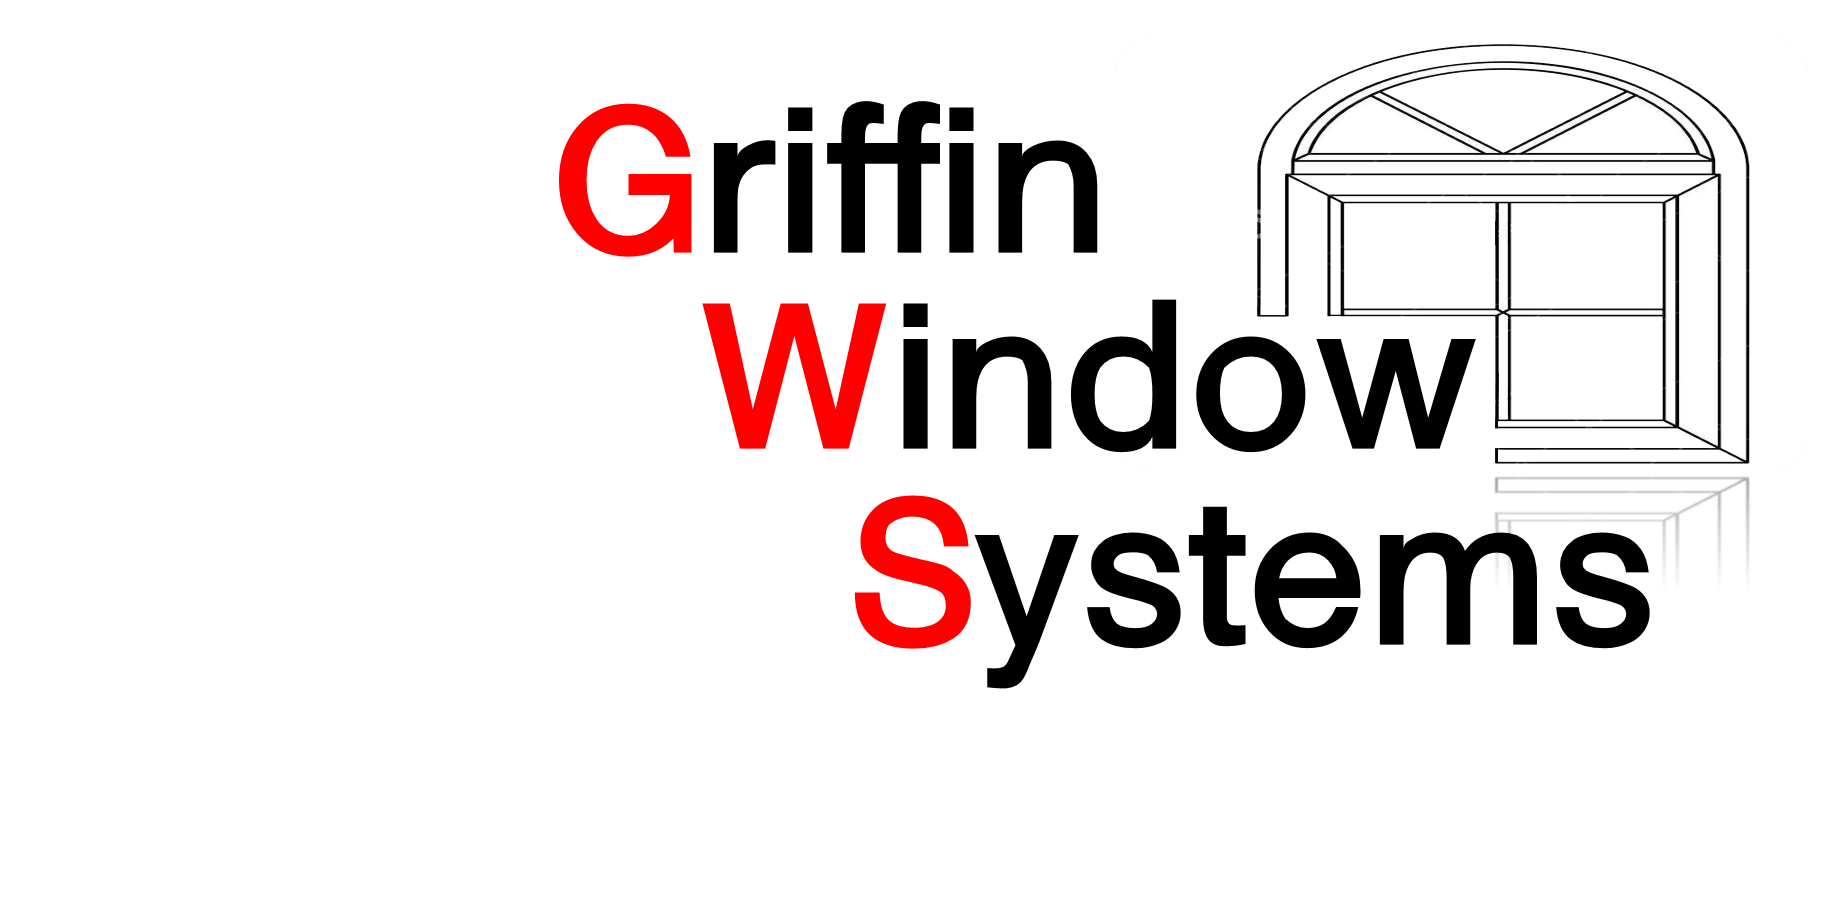 Griffin Window Systems